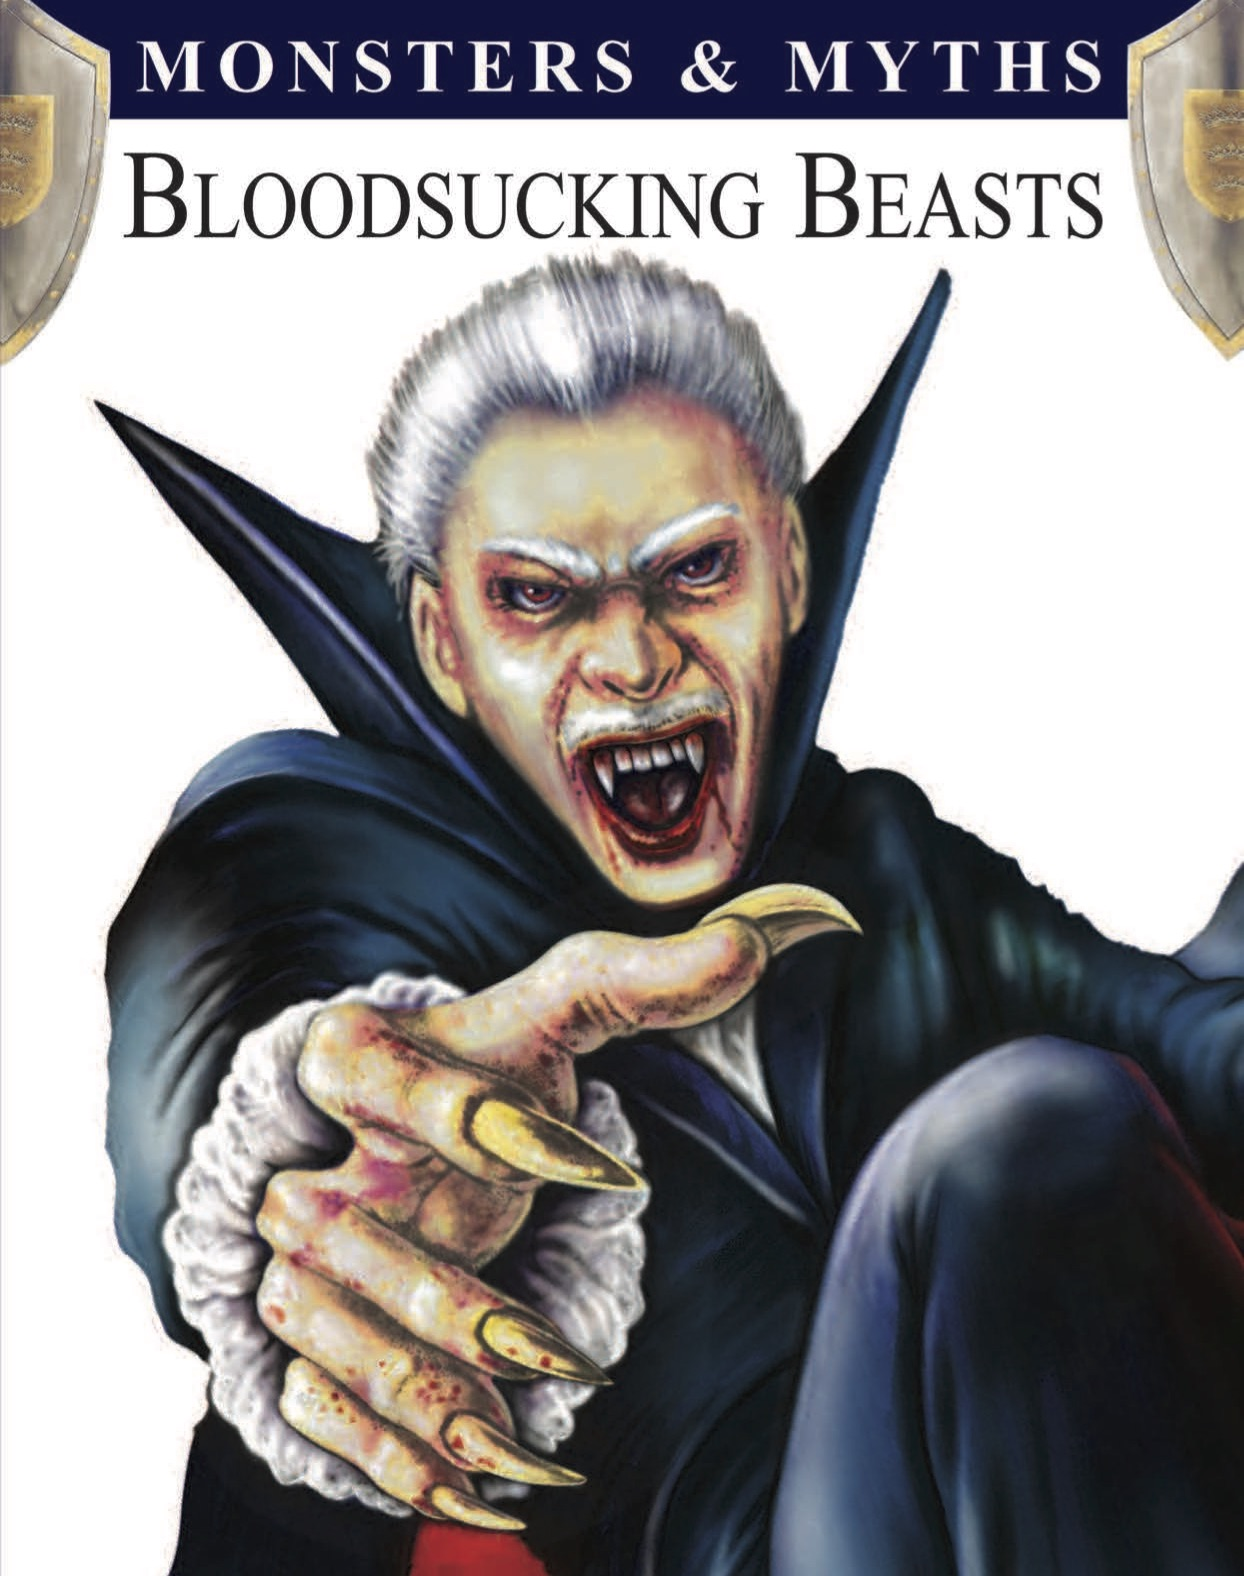 Monsters and Myths: Bloodsucking Beasts